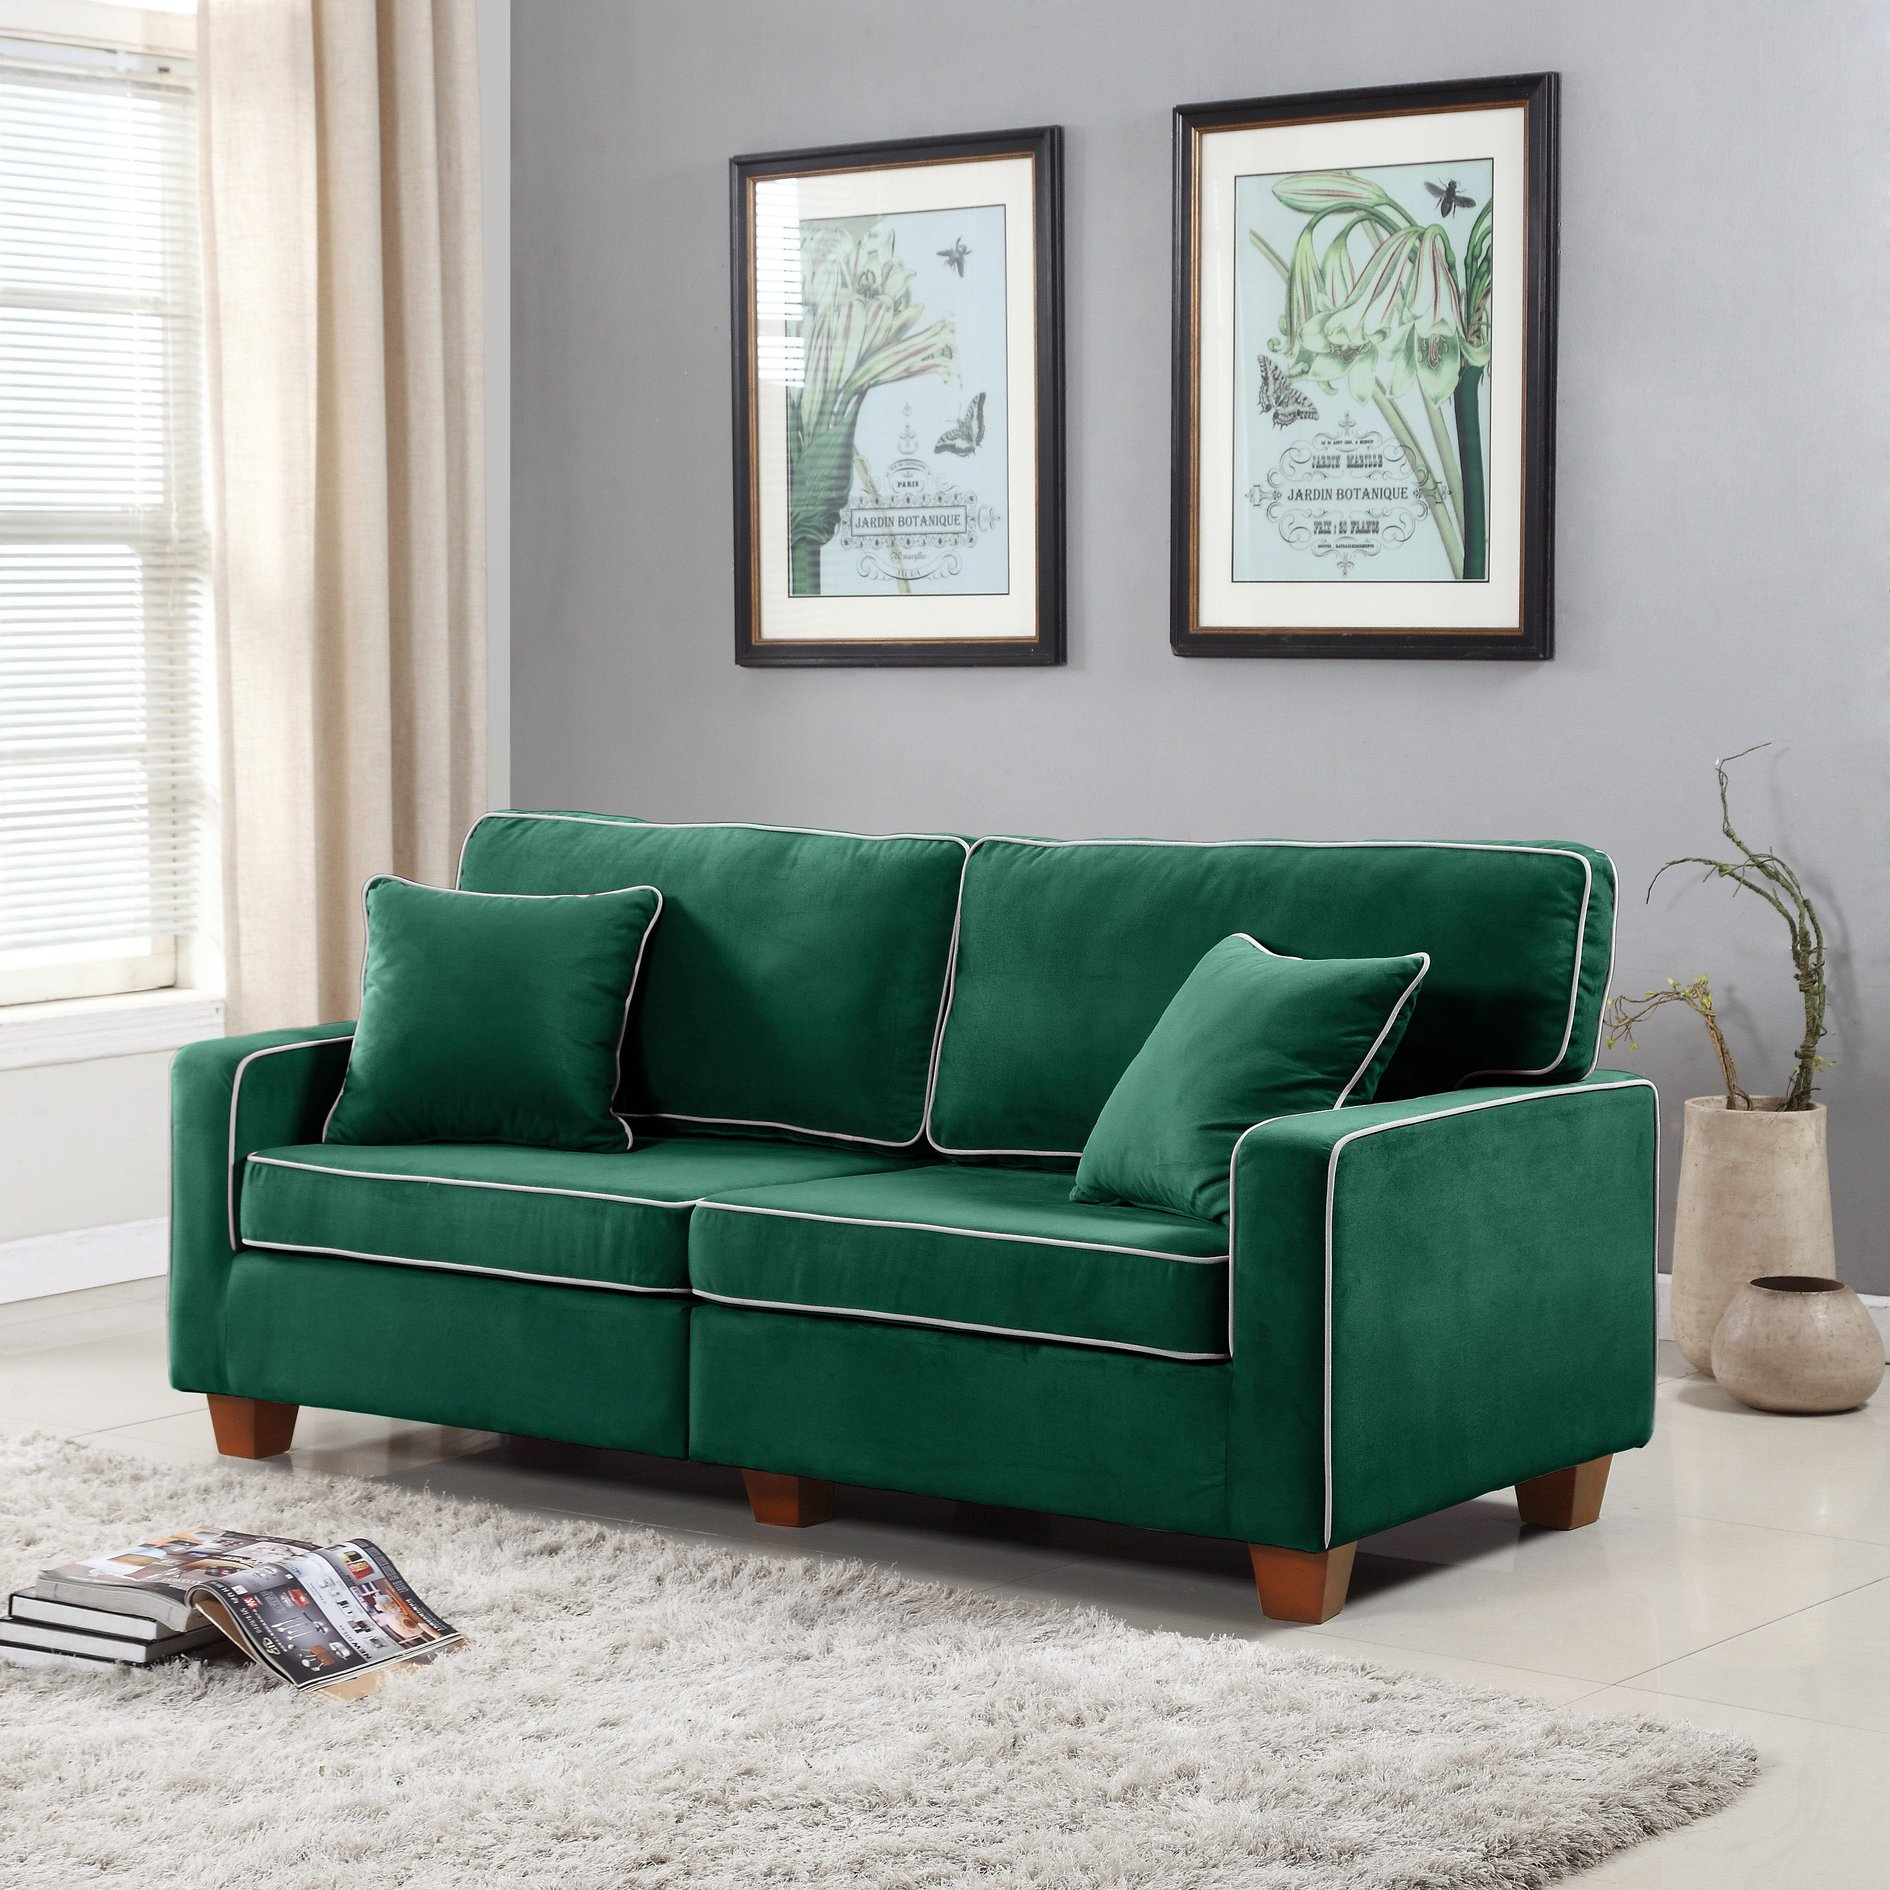 Excellent Details About Modern Two Tone Loveseat Sofa White Edge Trim Contrast Velvet Couch Green Ibusinesslaw Wood Chair Design Ideas Ibusinesslaworg